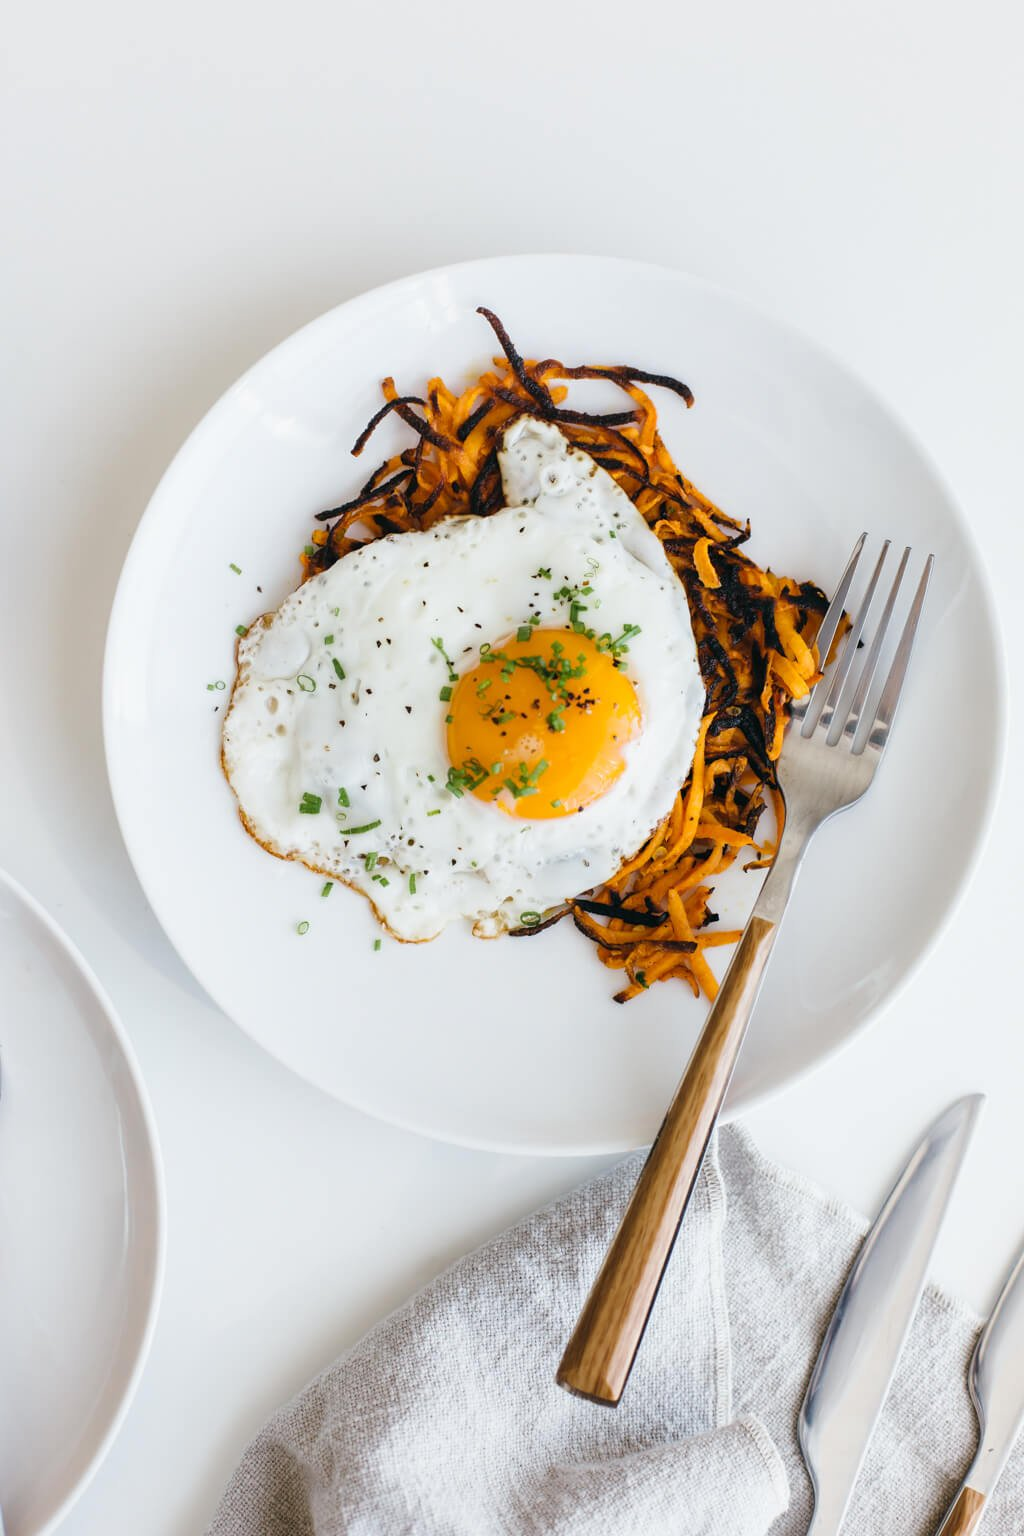 (gluten-free, vegan, paleo) These sweet potato hash browns make for the most delicious and healthy breakfast!